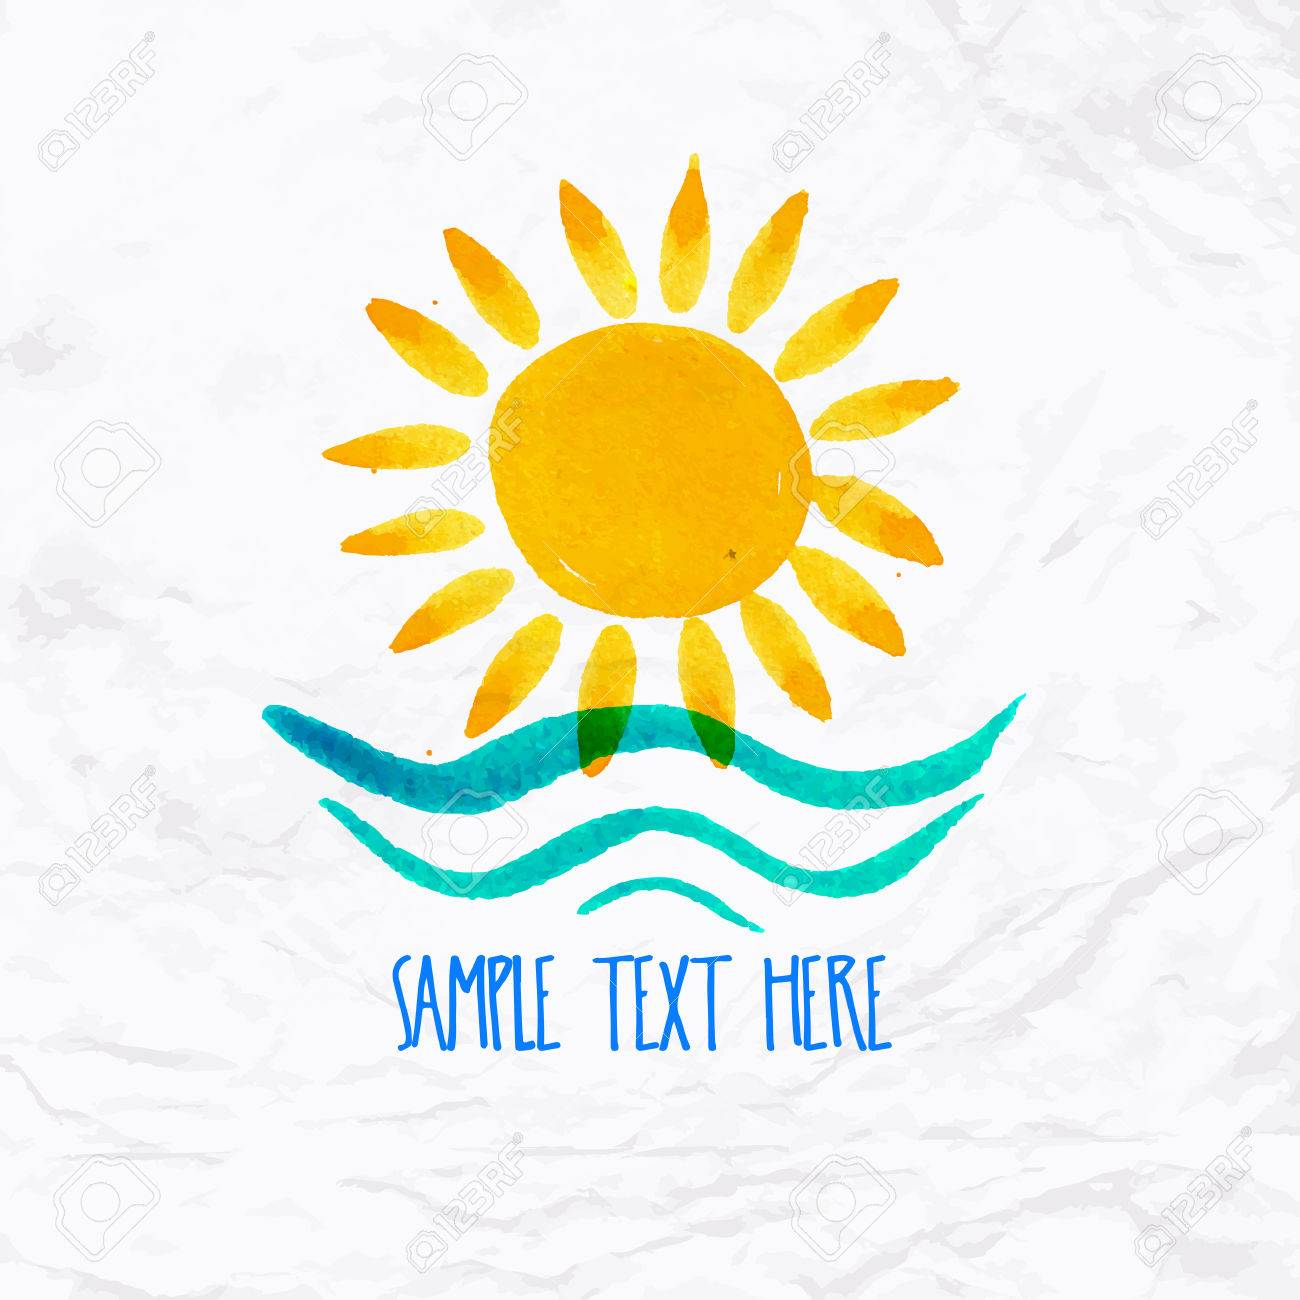 Design Template And Concept Of Positivity Energy Family Vacation Friendship Charity Local Community Help Hotel Logo Care Sharing